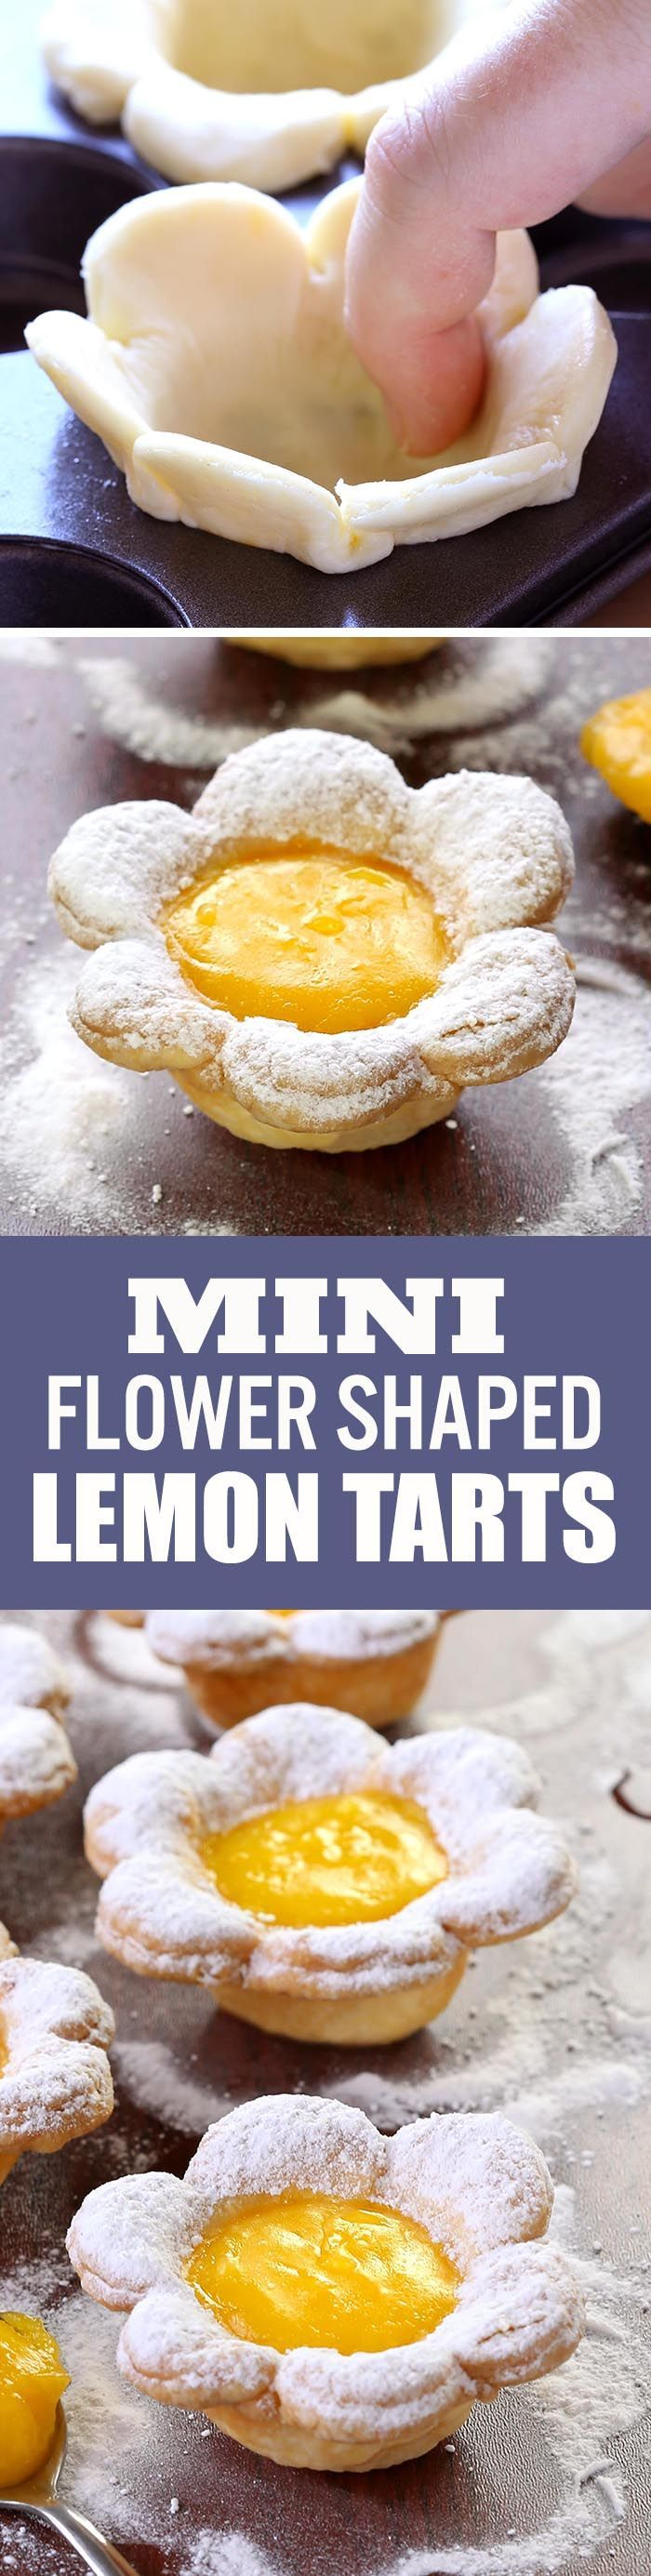 A bite sized dessert pretty enough for any special occasion. From Easter to Mother's Day, birthdays to bridal showers, sure to impress.